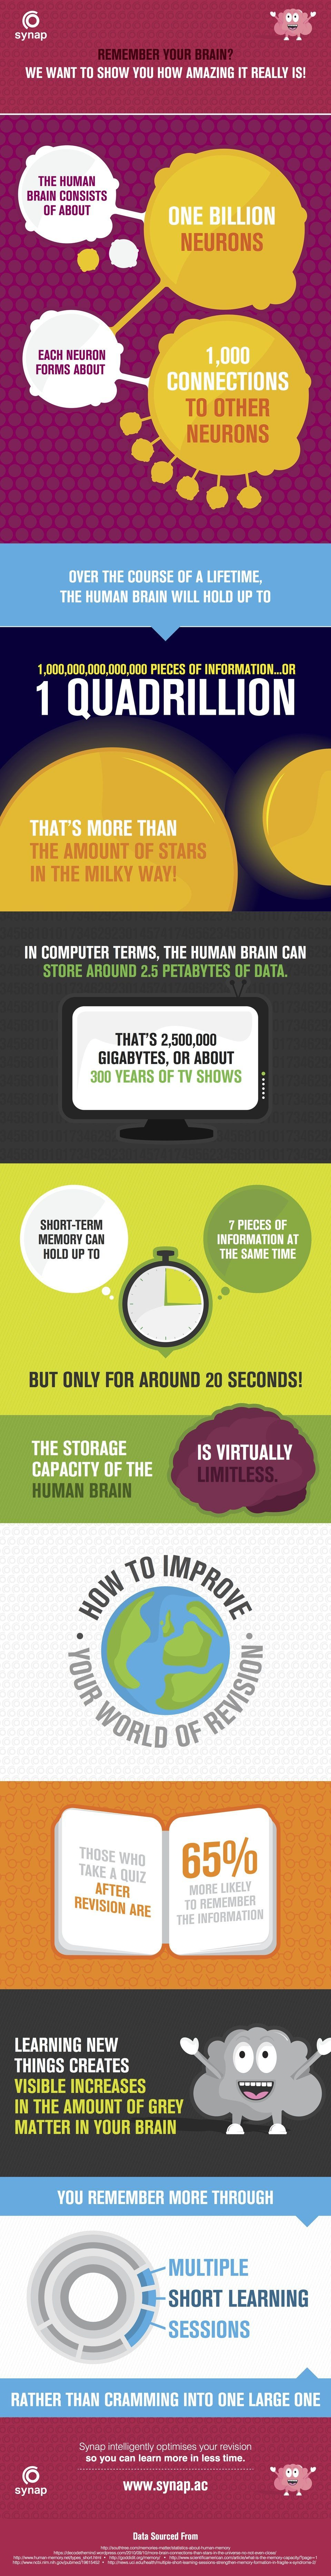 Your Amazing Memory Infographic - e-Learning Infographics